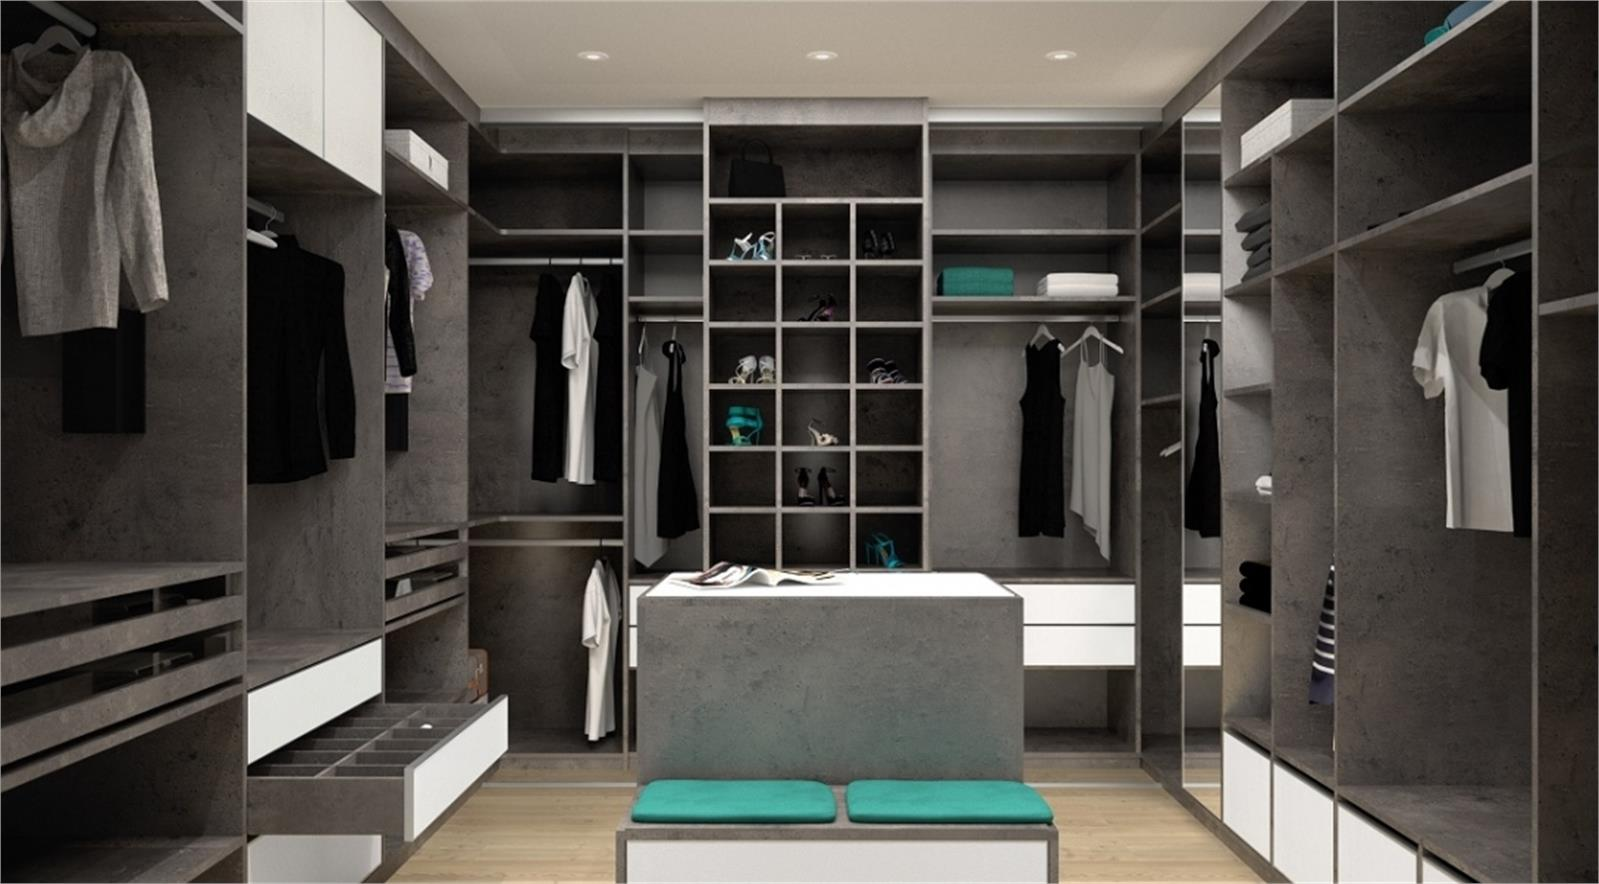 premier plan cuisine cuisine sur mesure editus. Black Bedroom Furniture Sets. Home Design Ideas